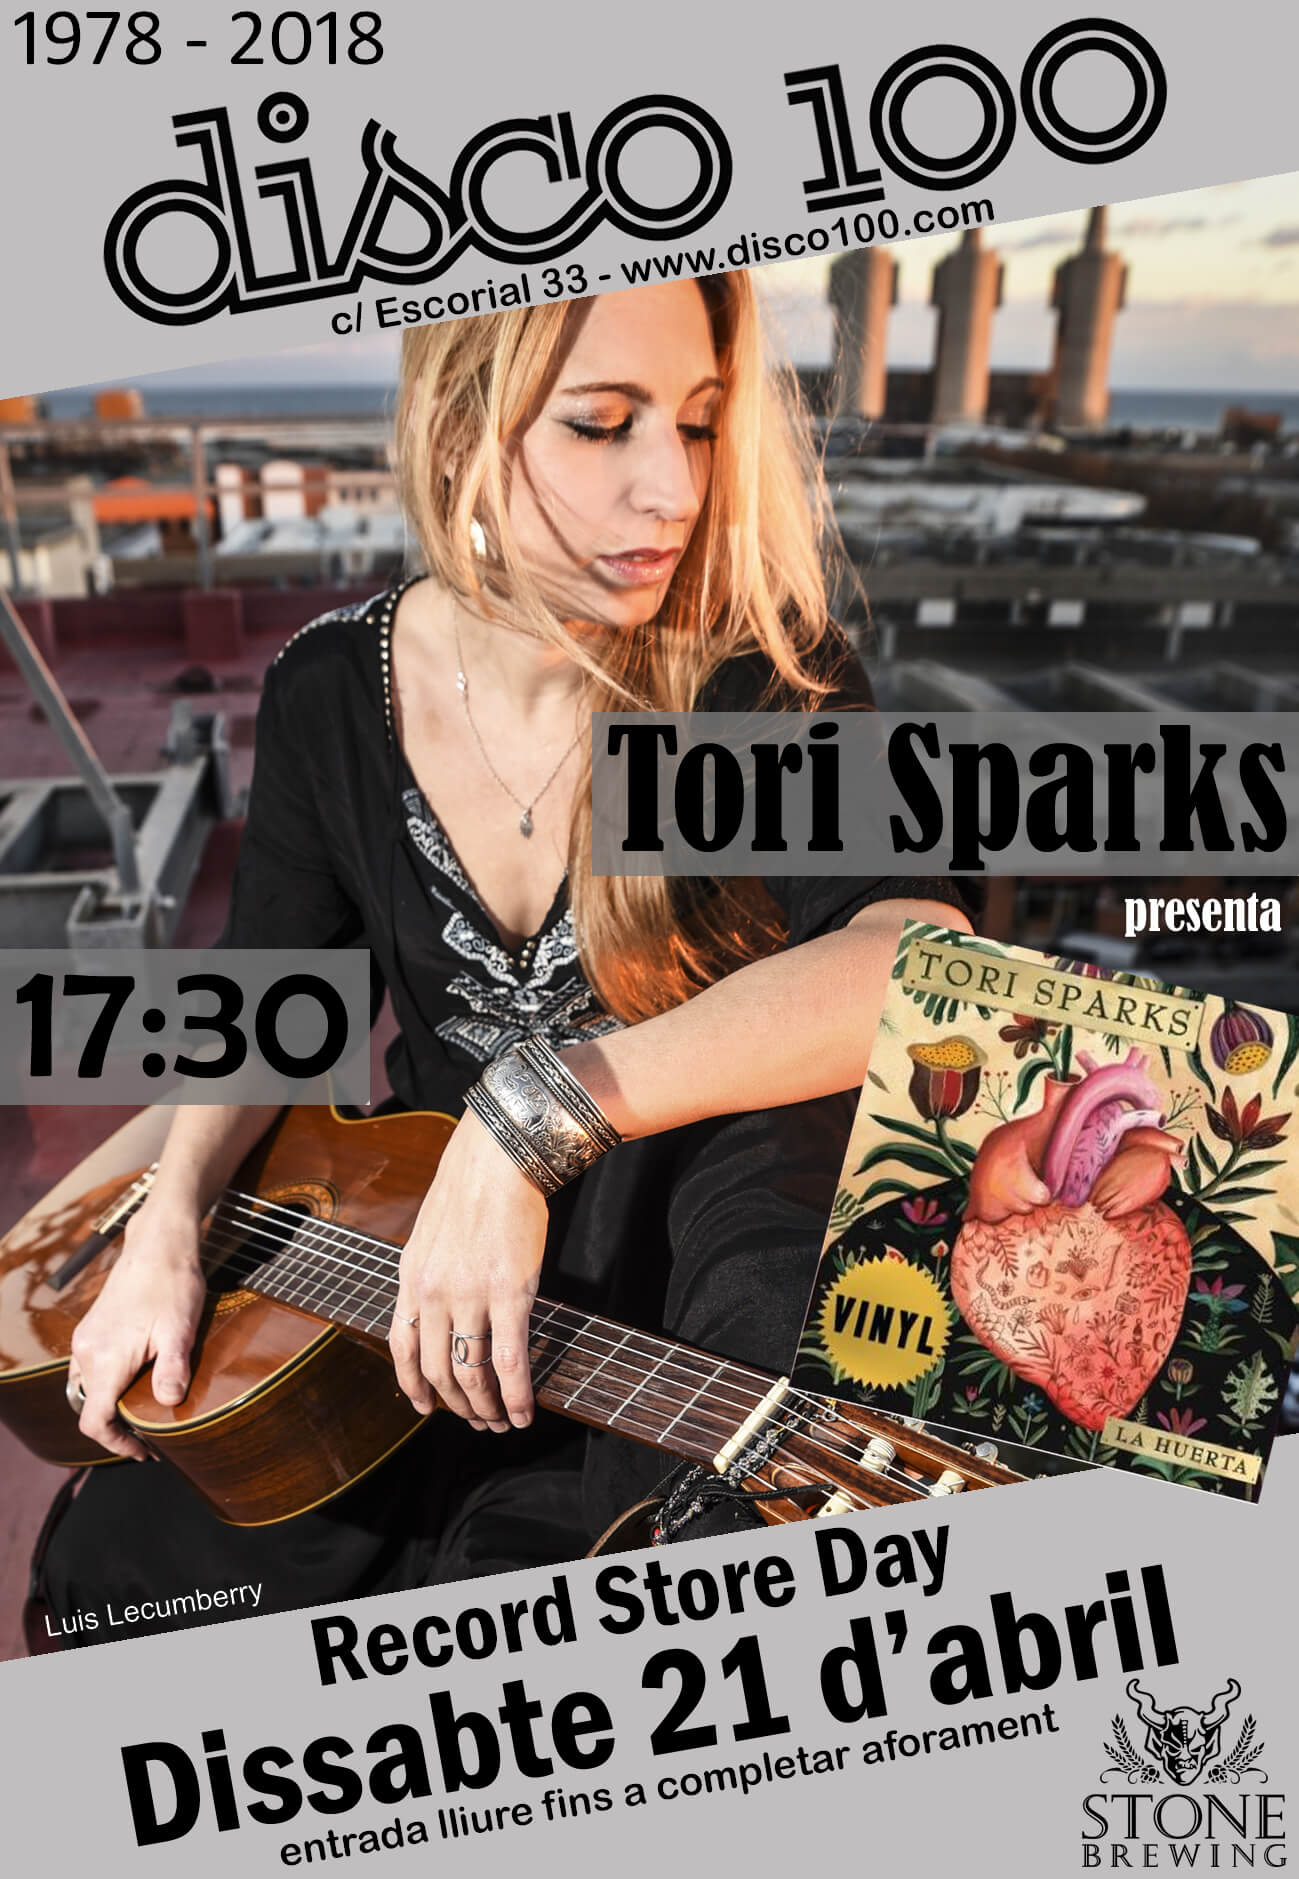 Tori Sparks Disco 100 Record Store Day 2018